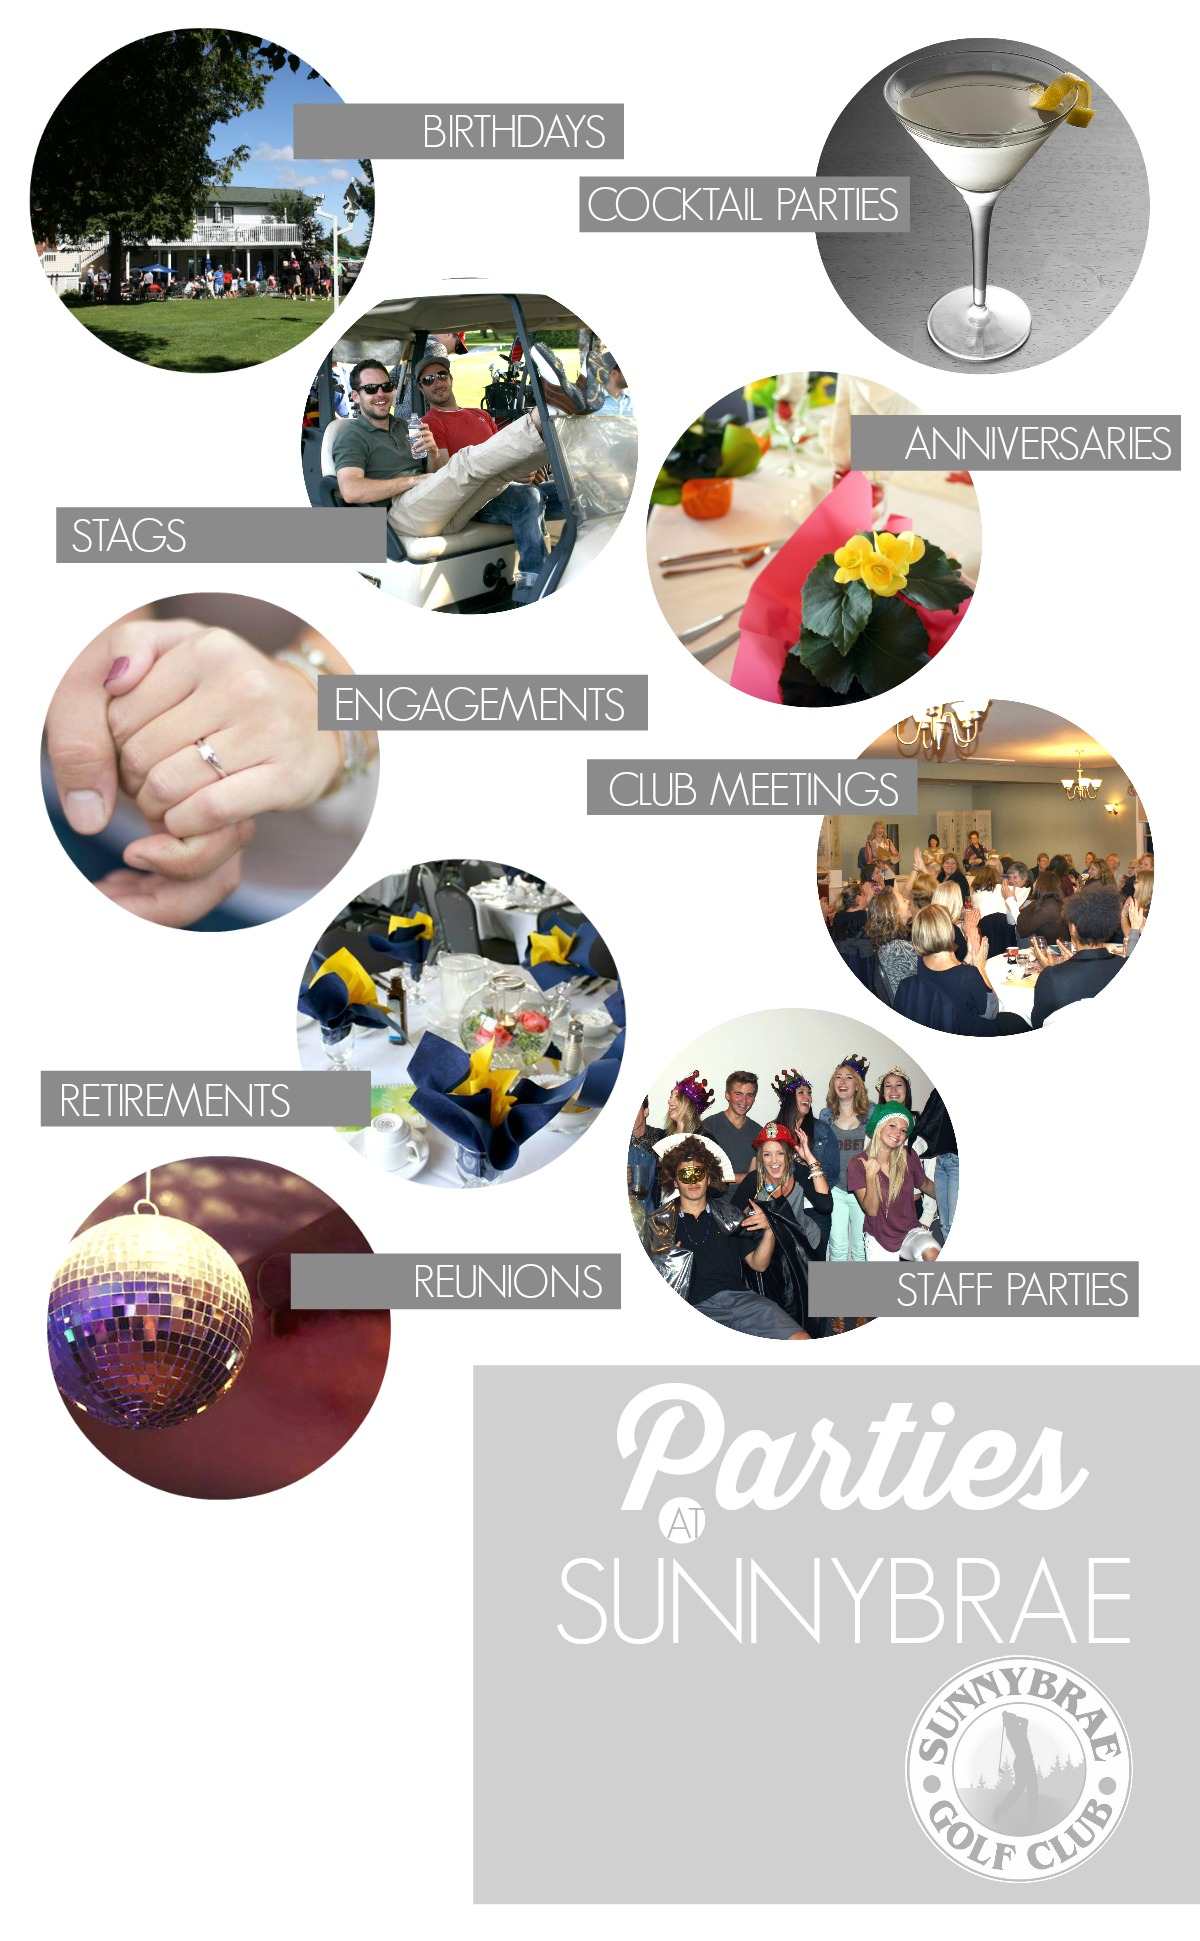 Let Sunnybrae host your next Event or Party!